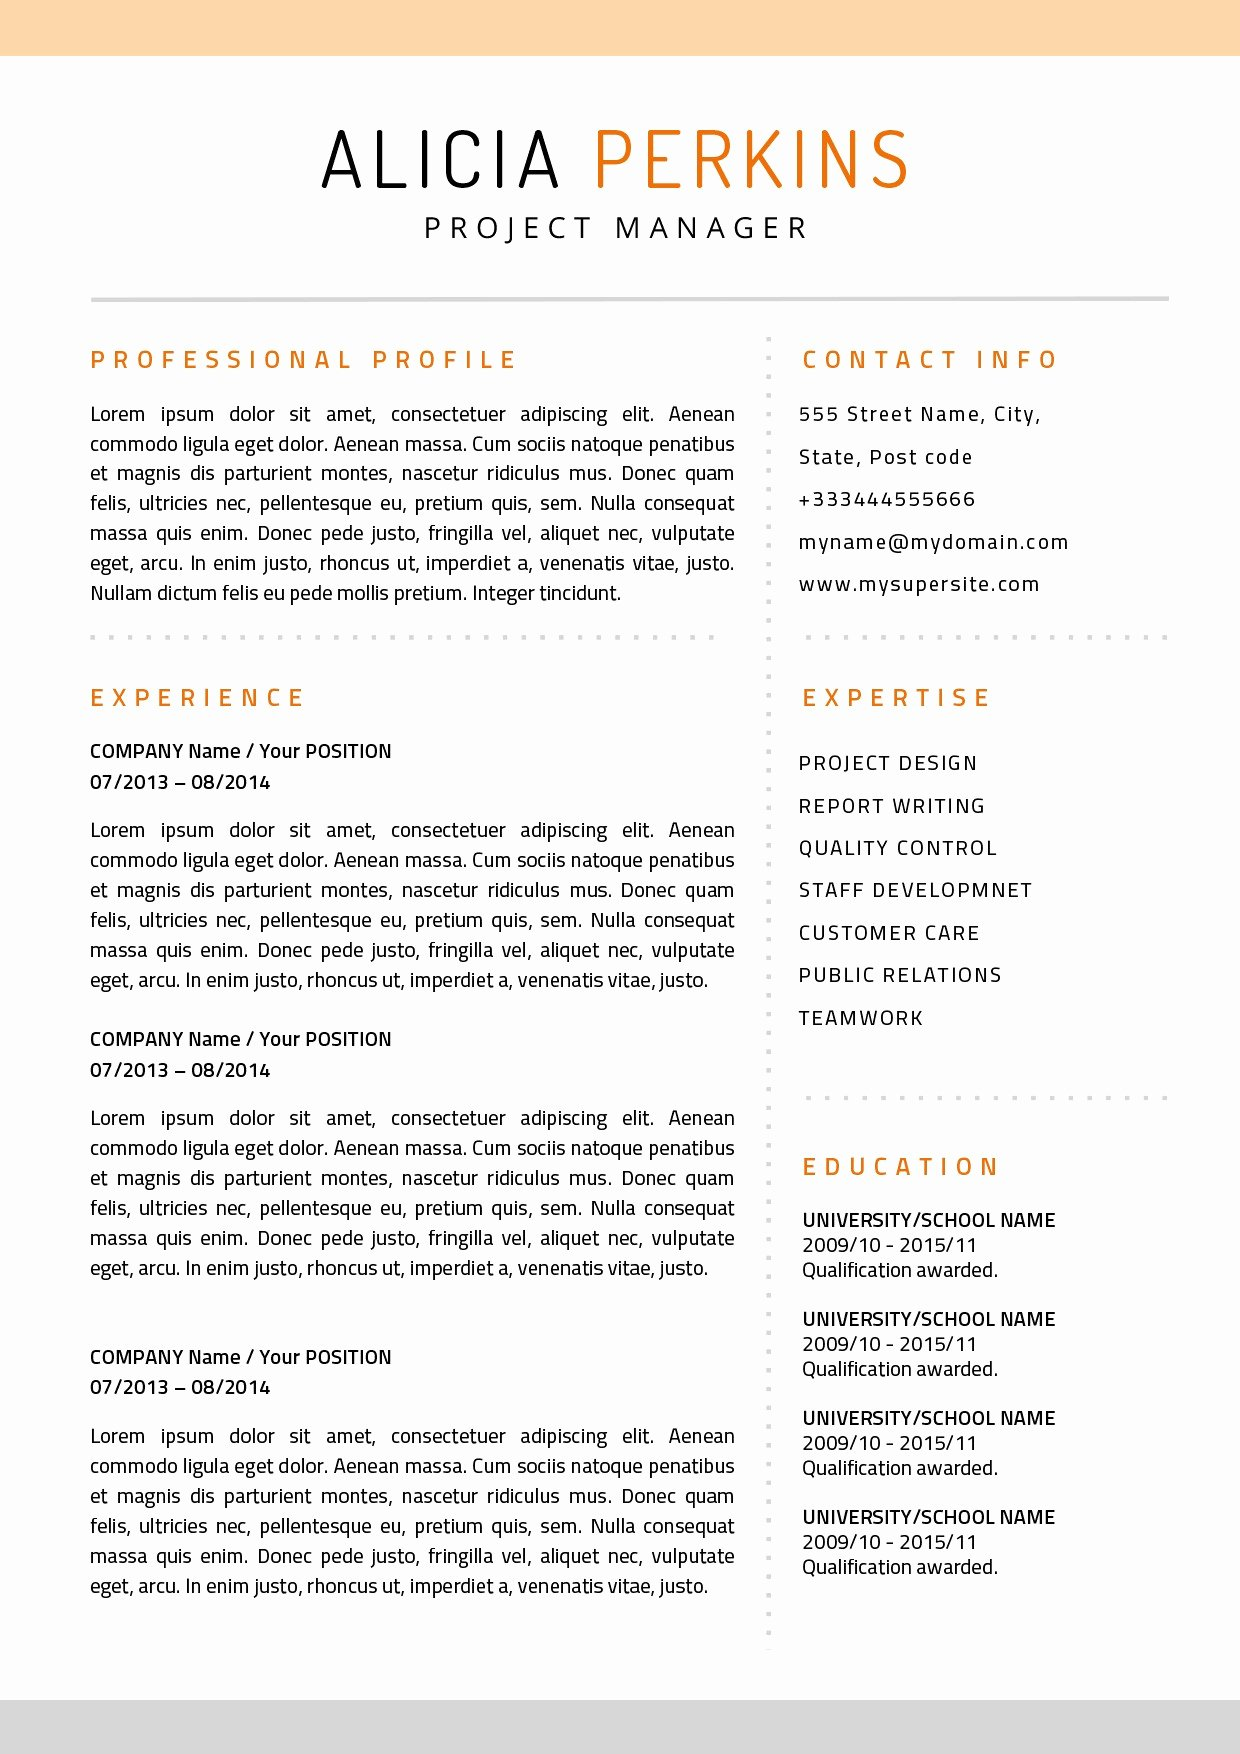 Apple Pages Resume Template Fresh Free Creative Resume Templates for Mac Pages